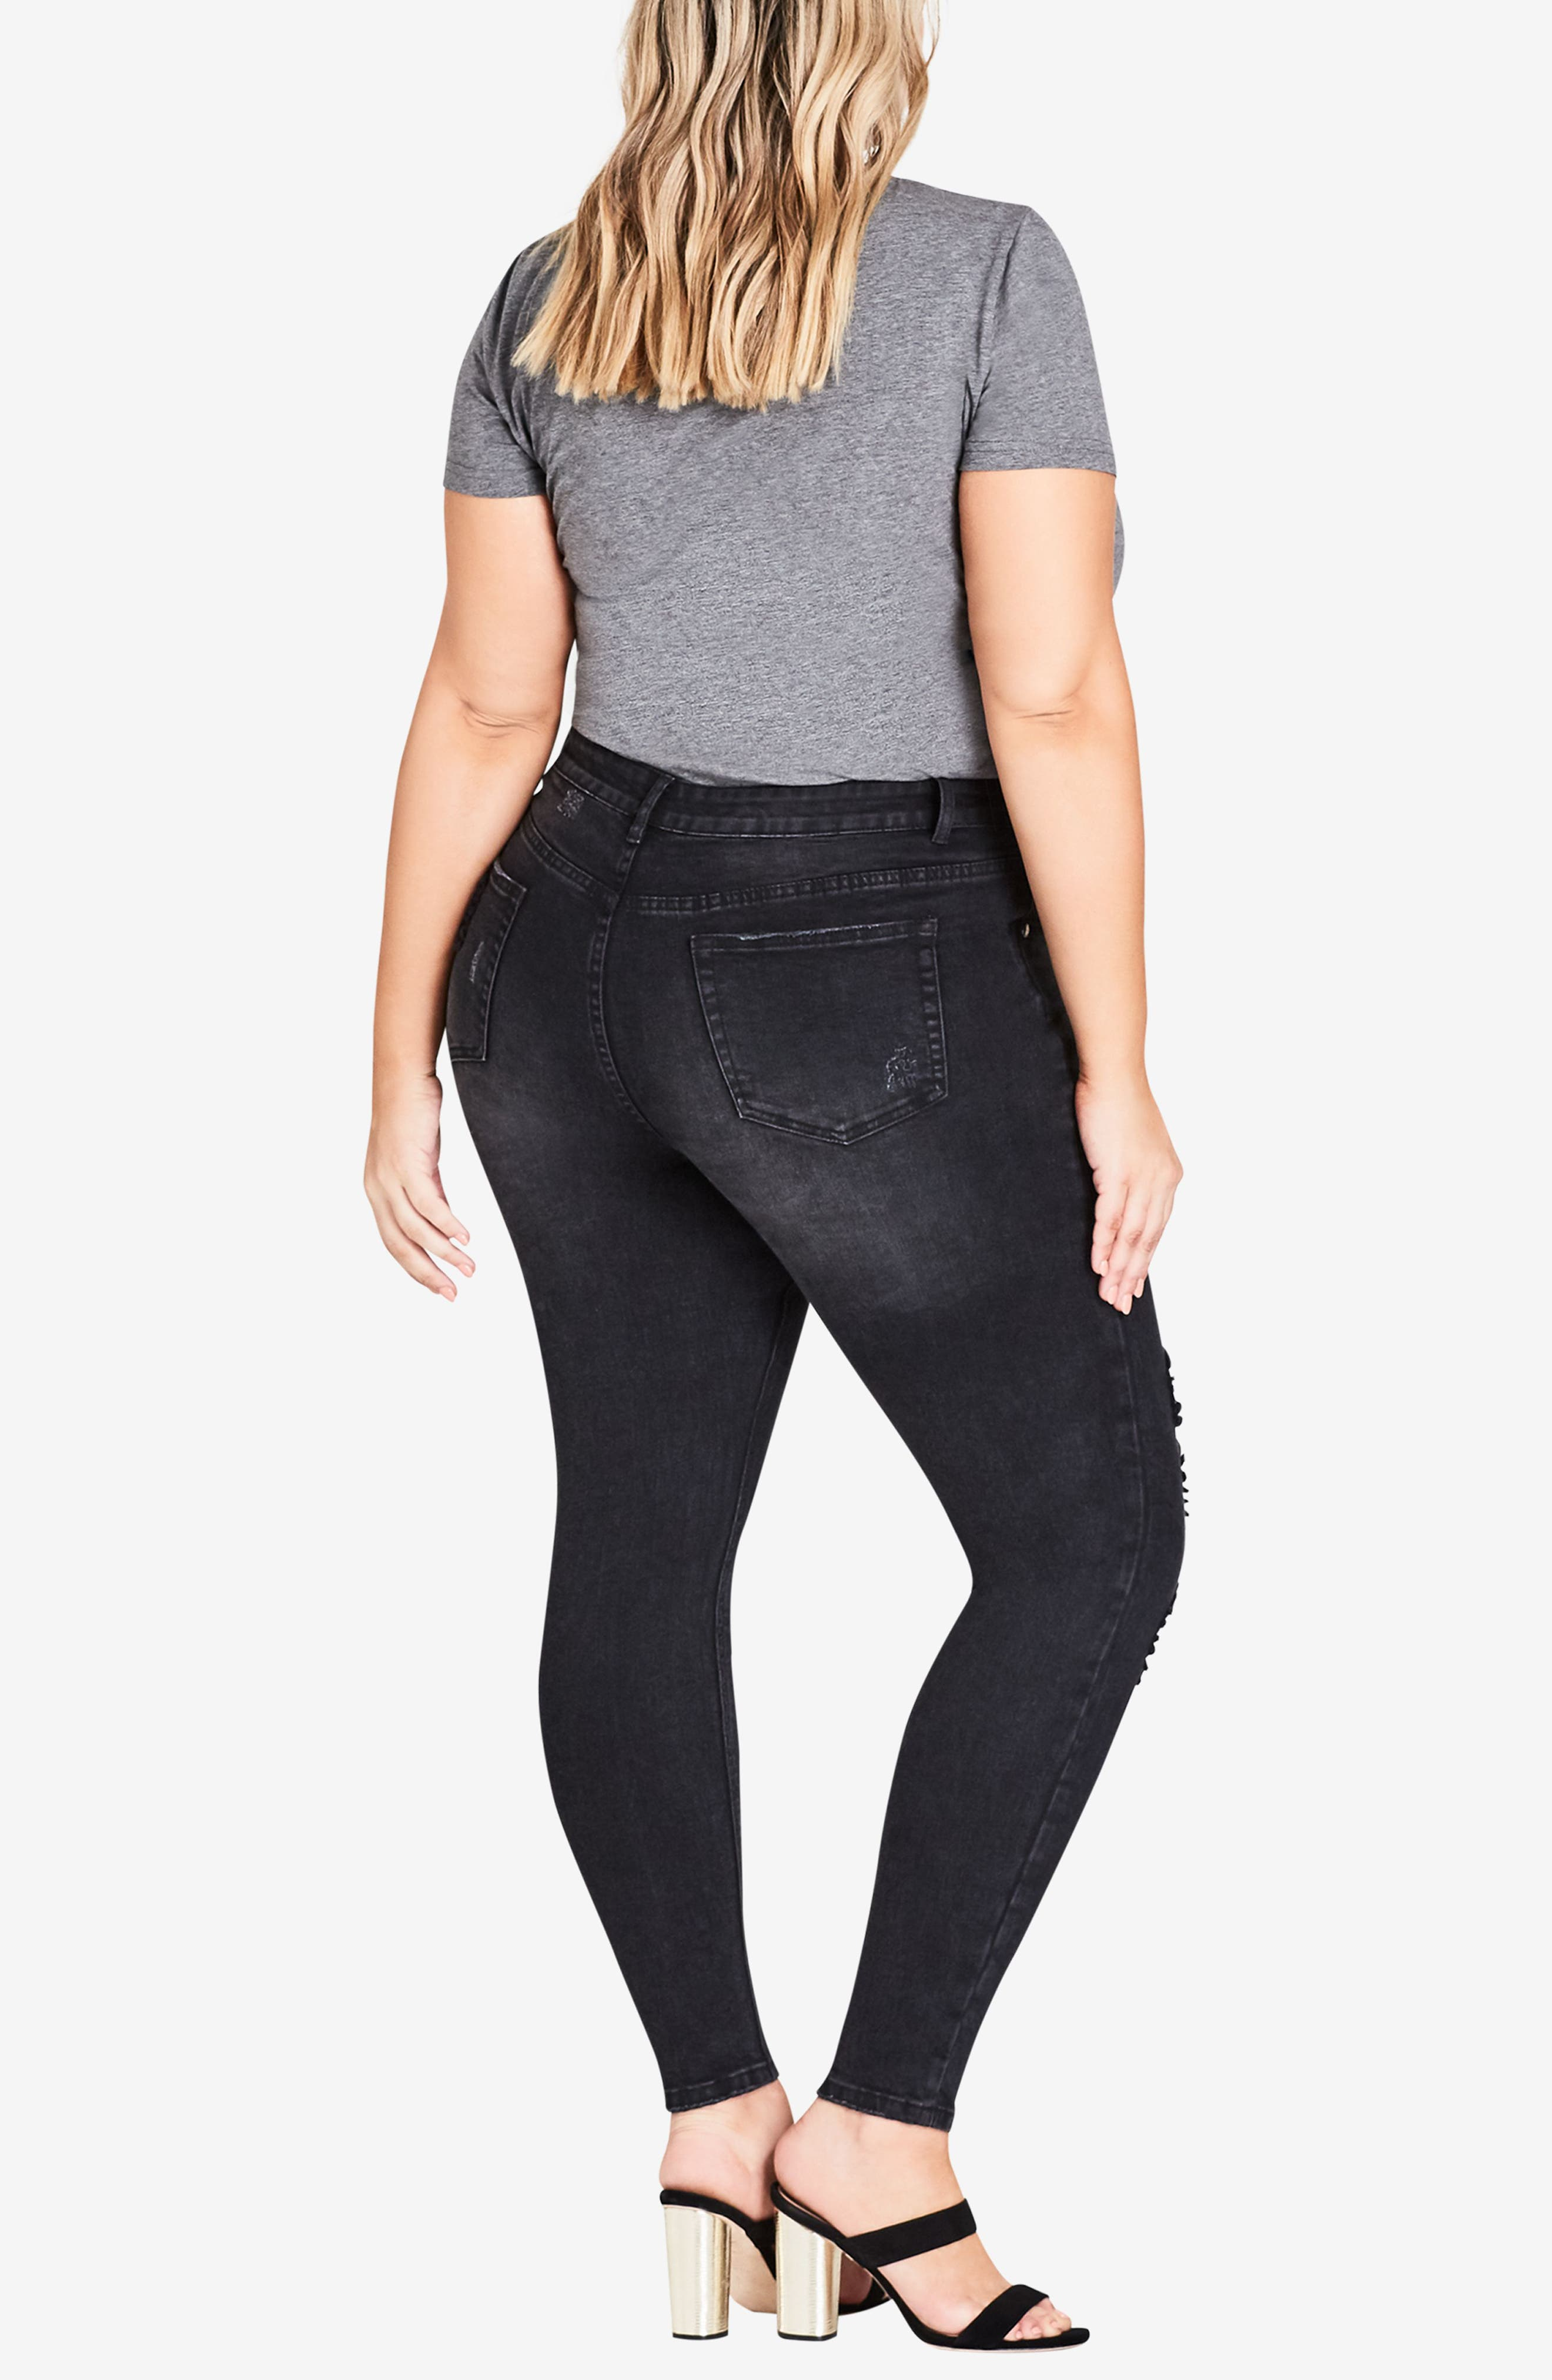 CITY CHIC,                             Fishnet Ripped Skinny Jeans,                             Alternate thumbnail 4, color,                             001